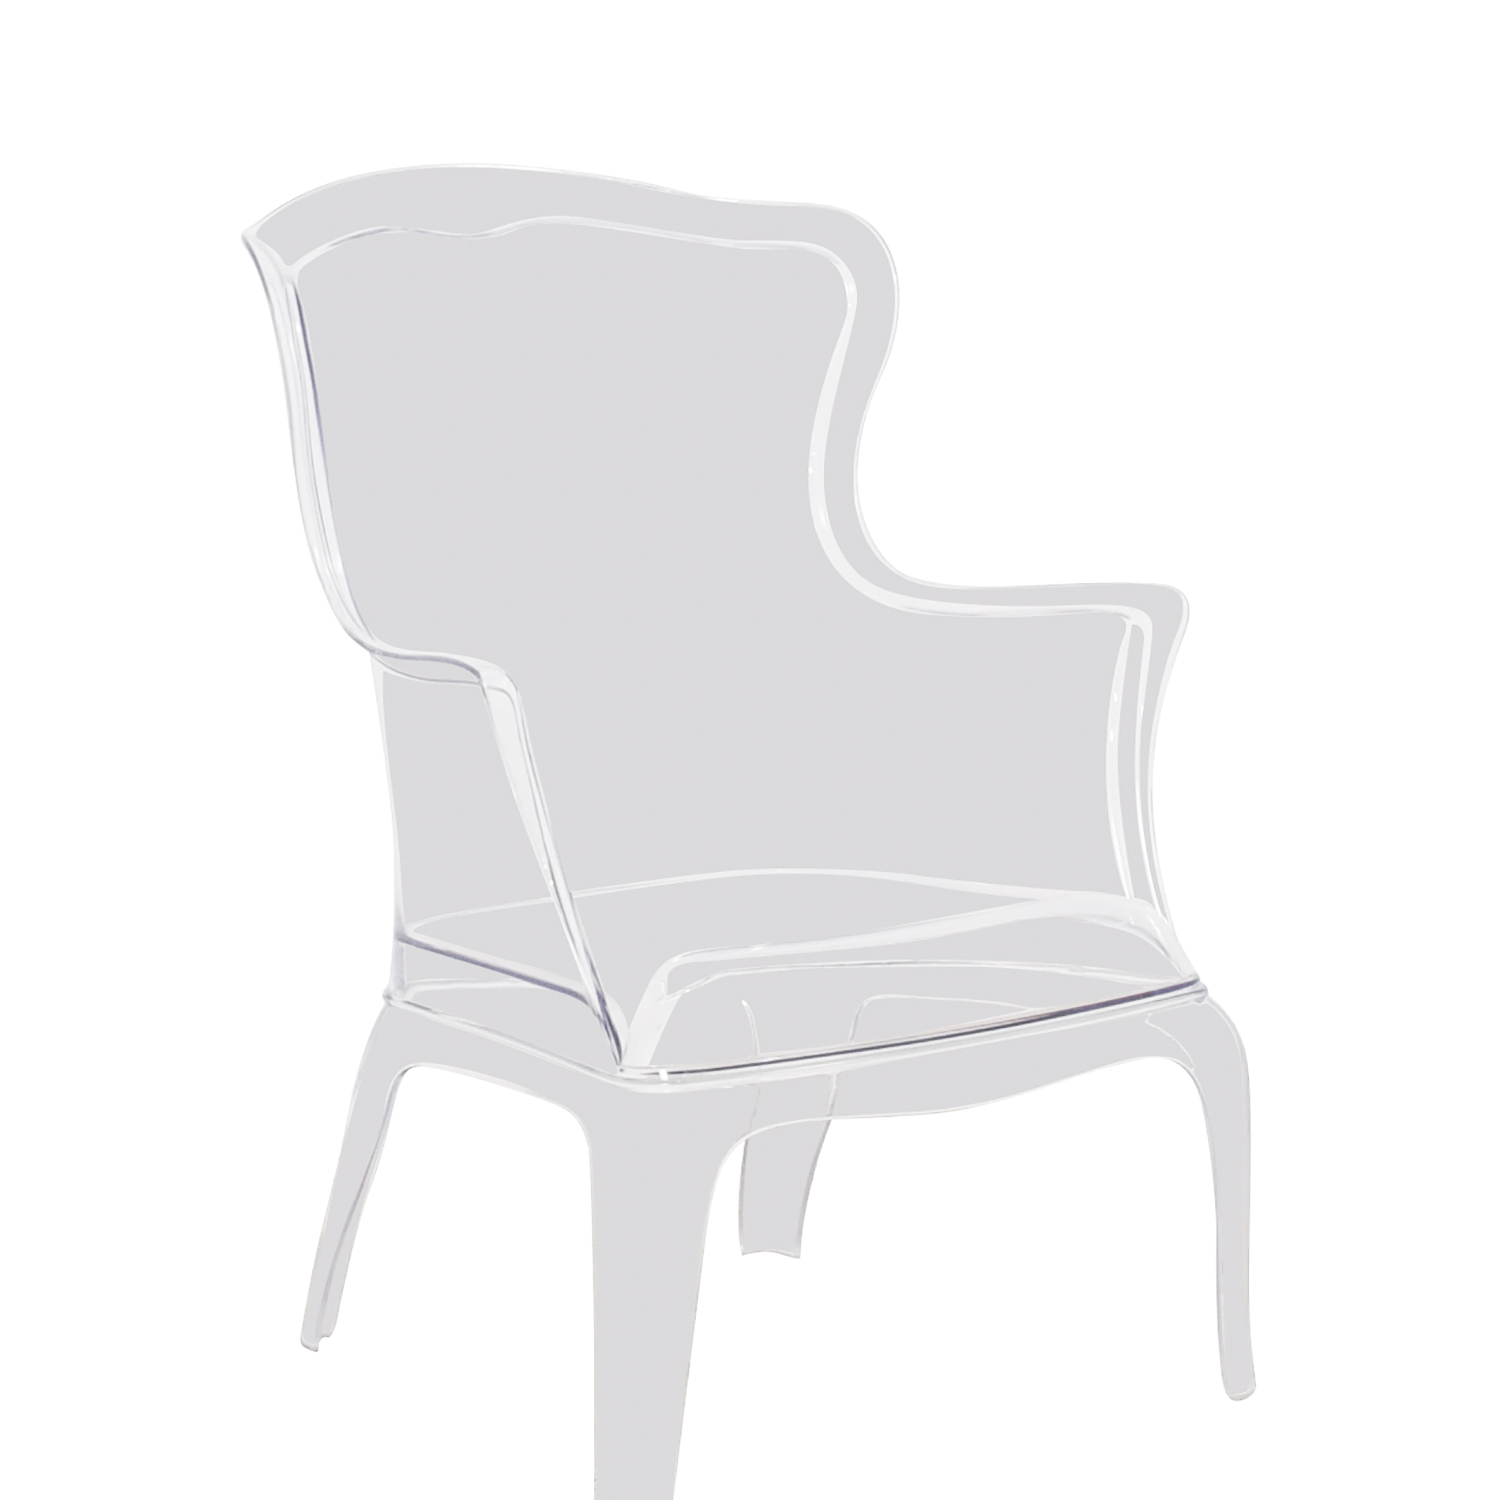 Zuo Modern Zuo Modern Transparent Vision Chair coupon